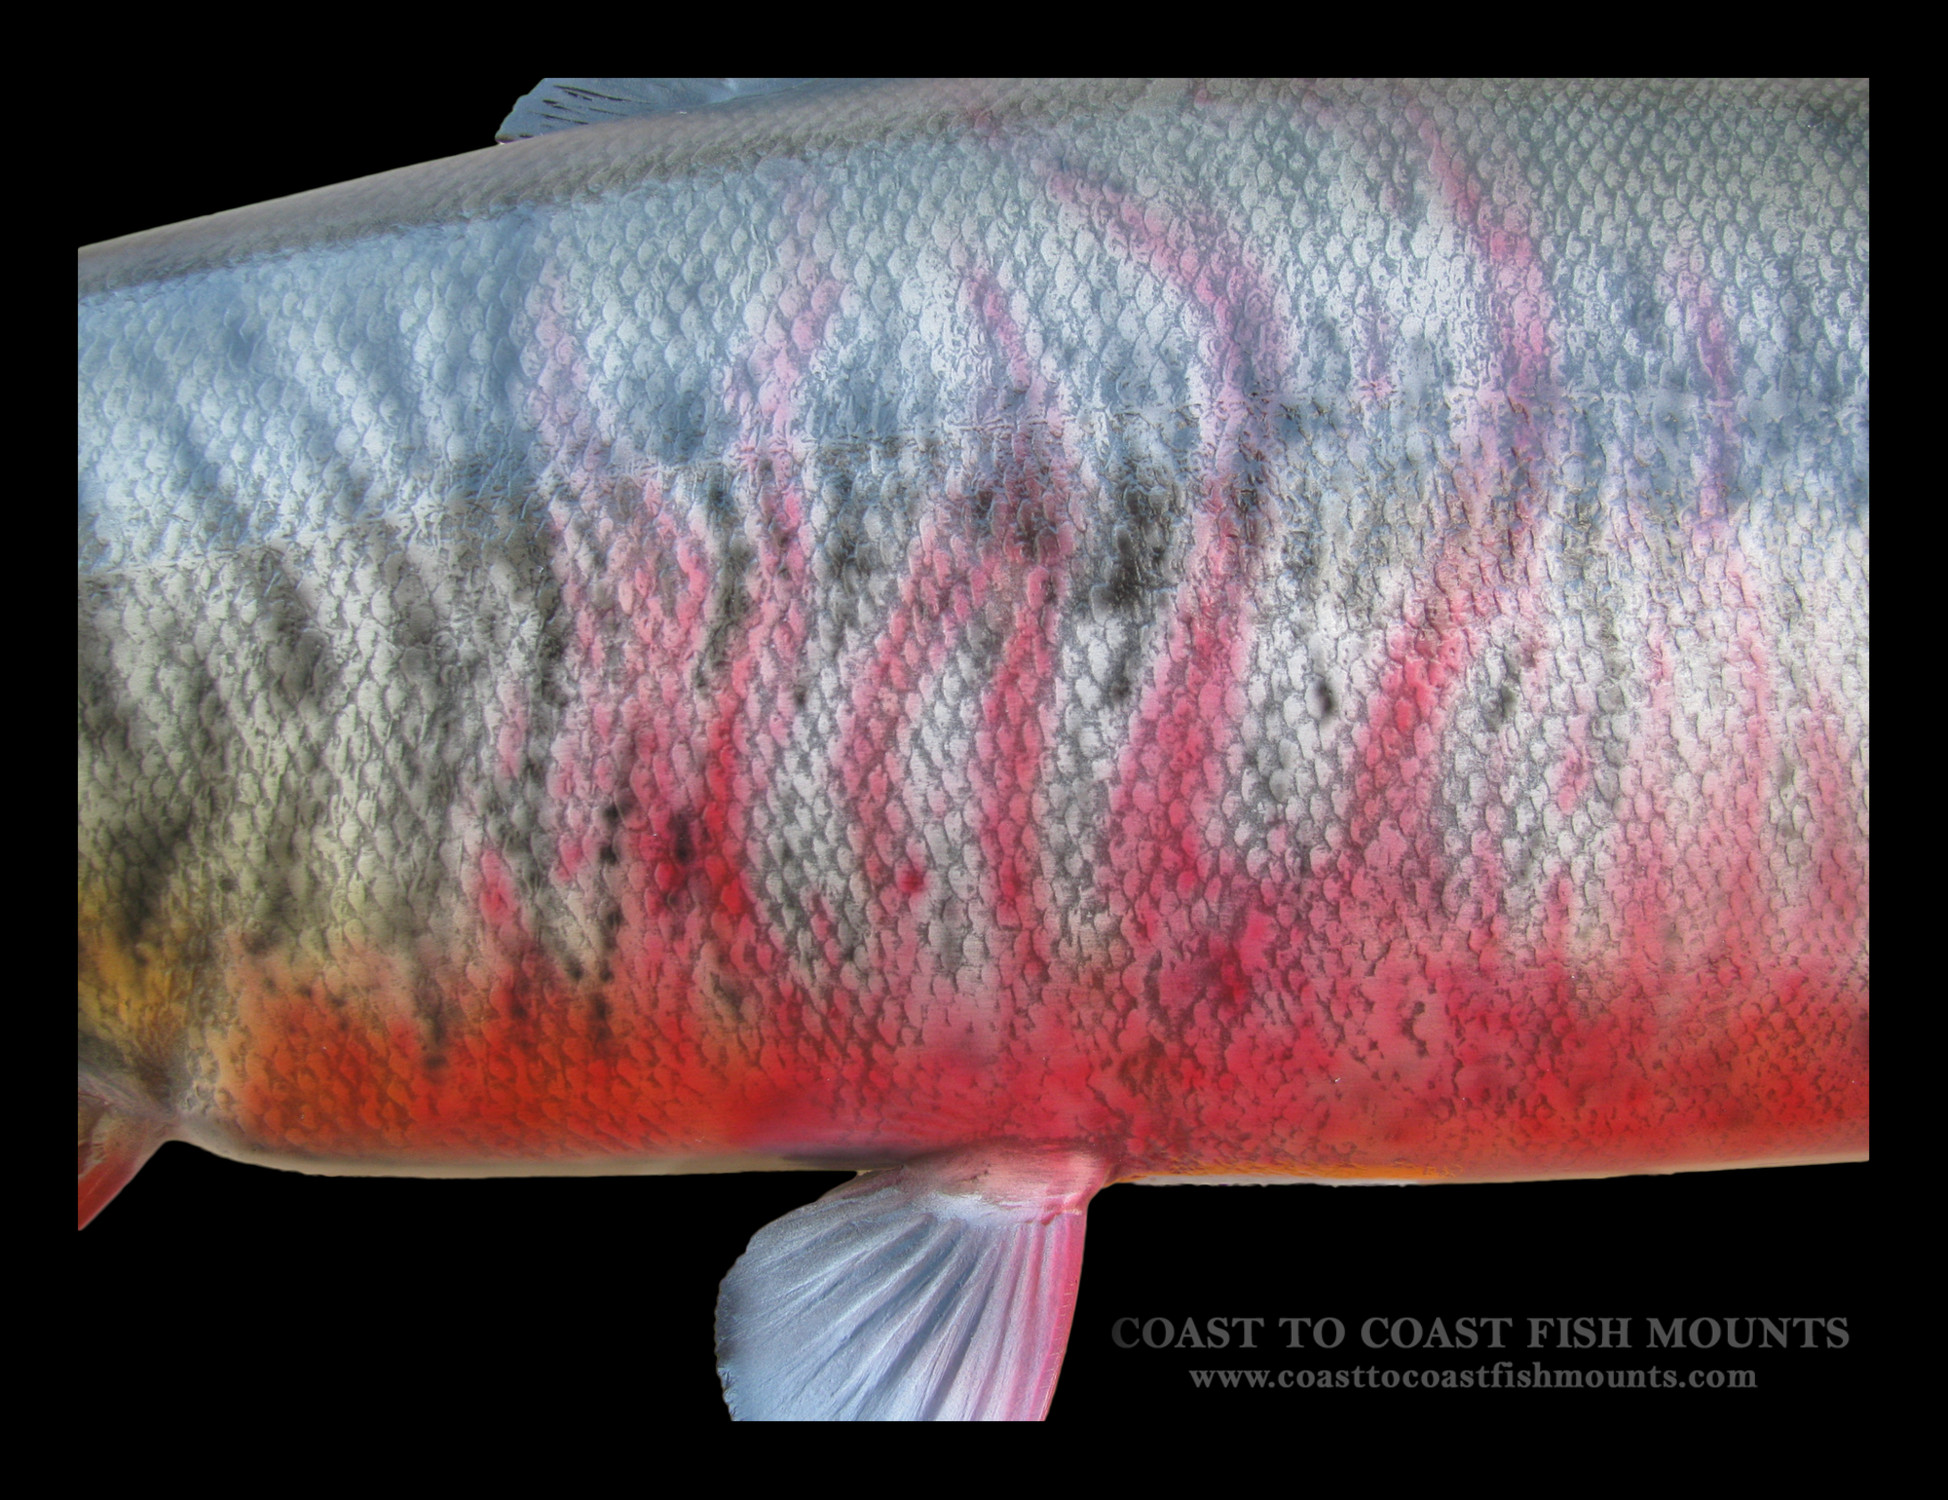 Chum Salmon Fish Mount and Fish Replicas | Coast-to-Coast